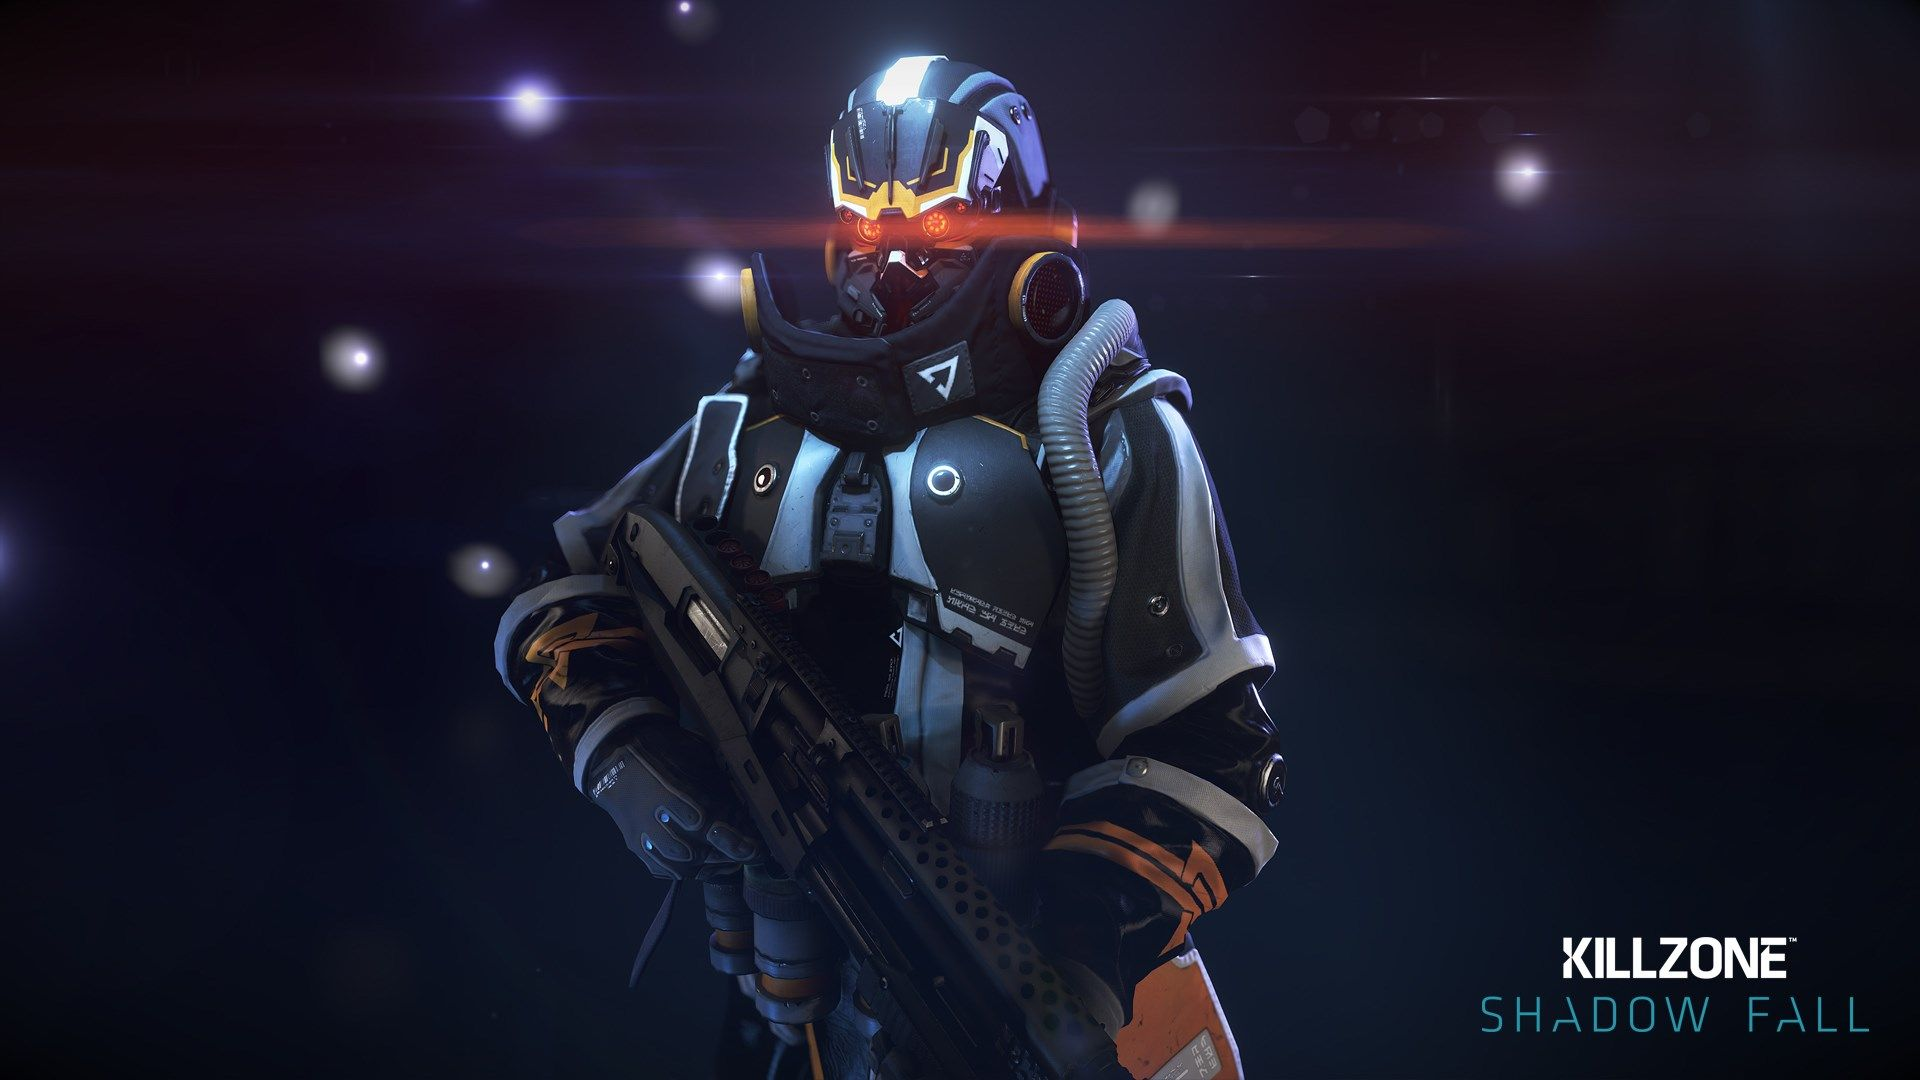 1920x1080 px killzone shadow fall wallpaper 1080p high quality by 1920x1080 px killzone shadow fall wallpaper 1080p high quality by rollo ross voltagebd Gallery